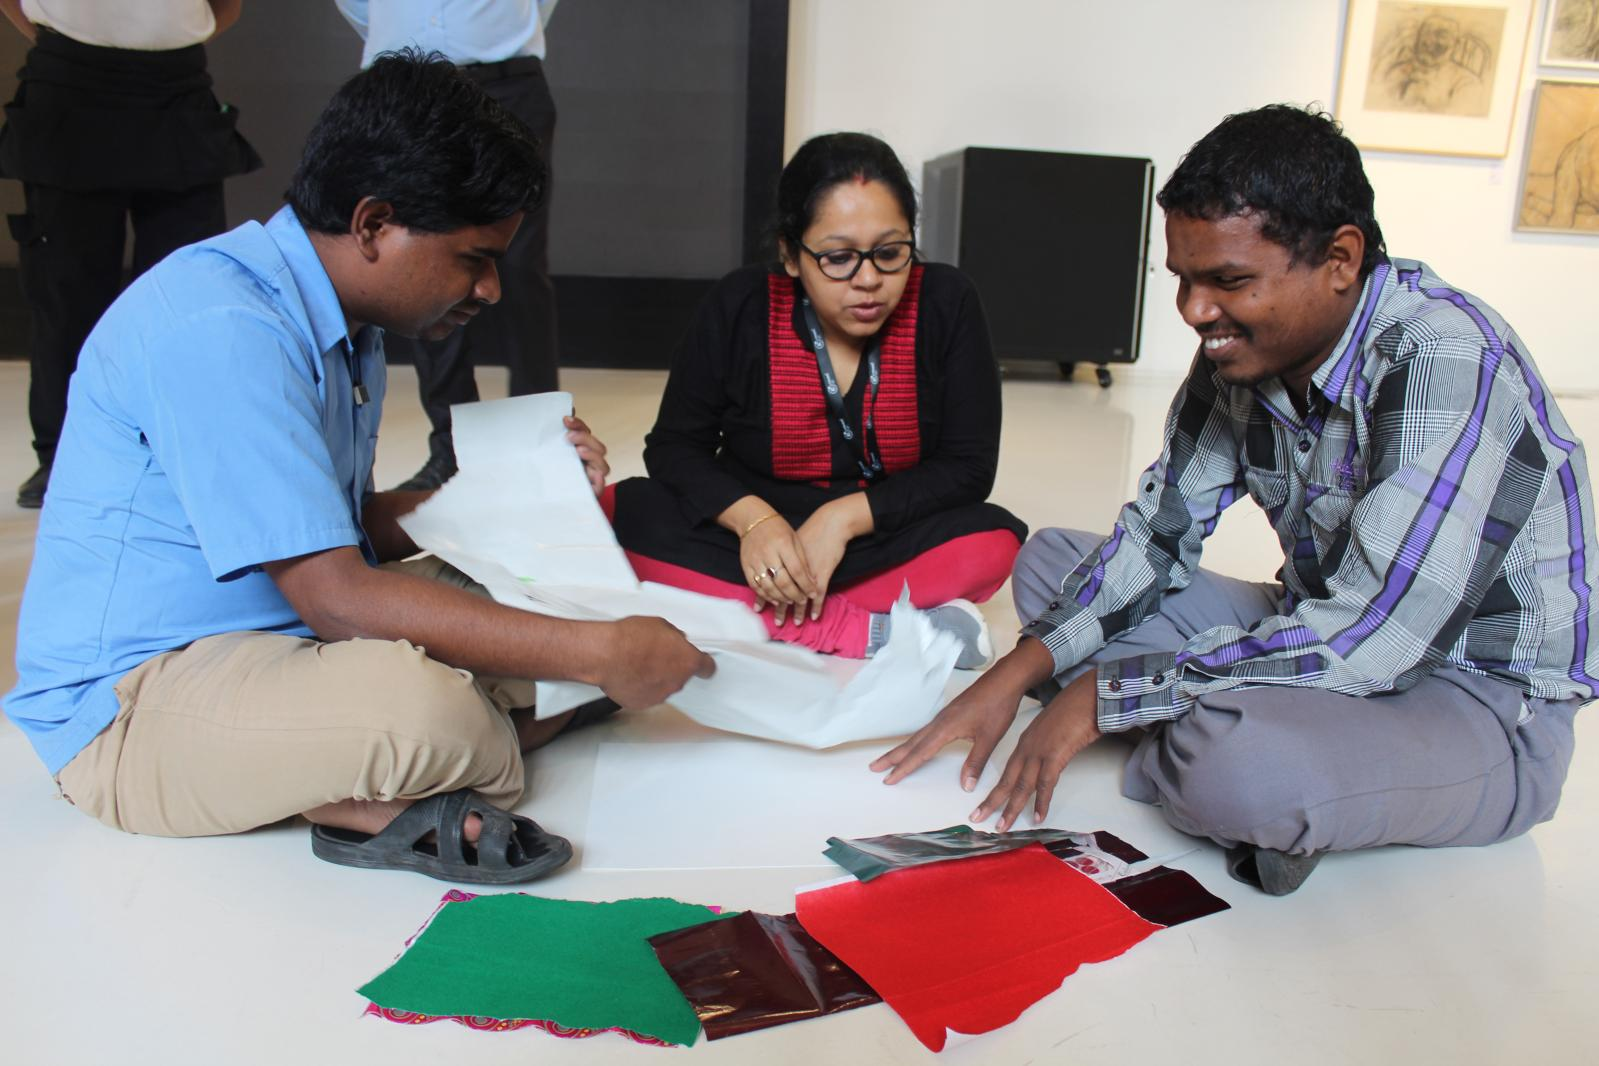 KCC DEAI -Accessibility - People who are differently-abled visually experiencing Tactile art.Courtesy of Kolkata Center for Creativity